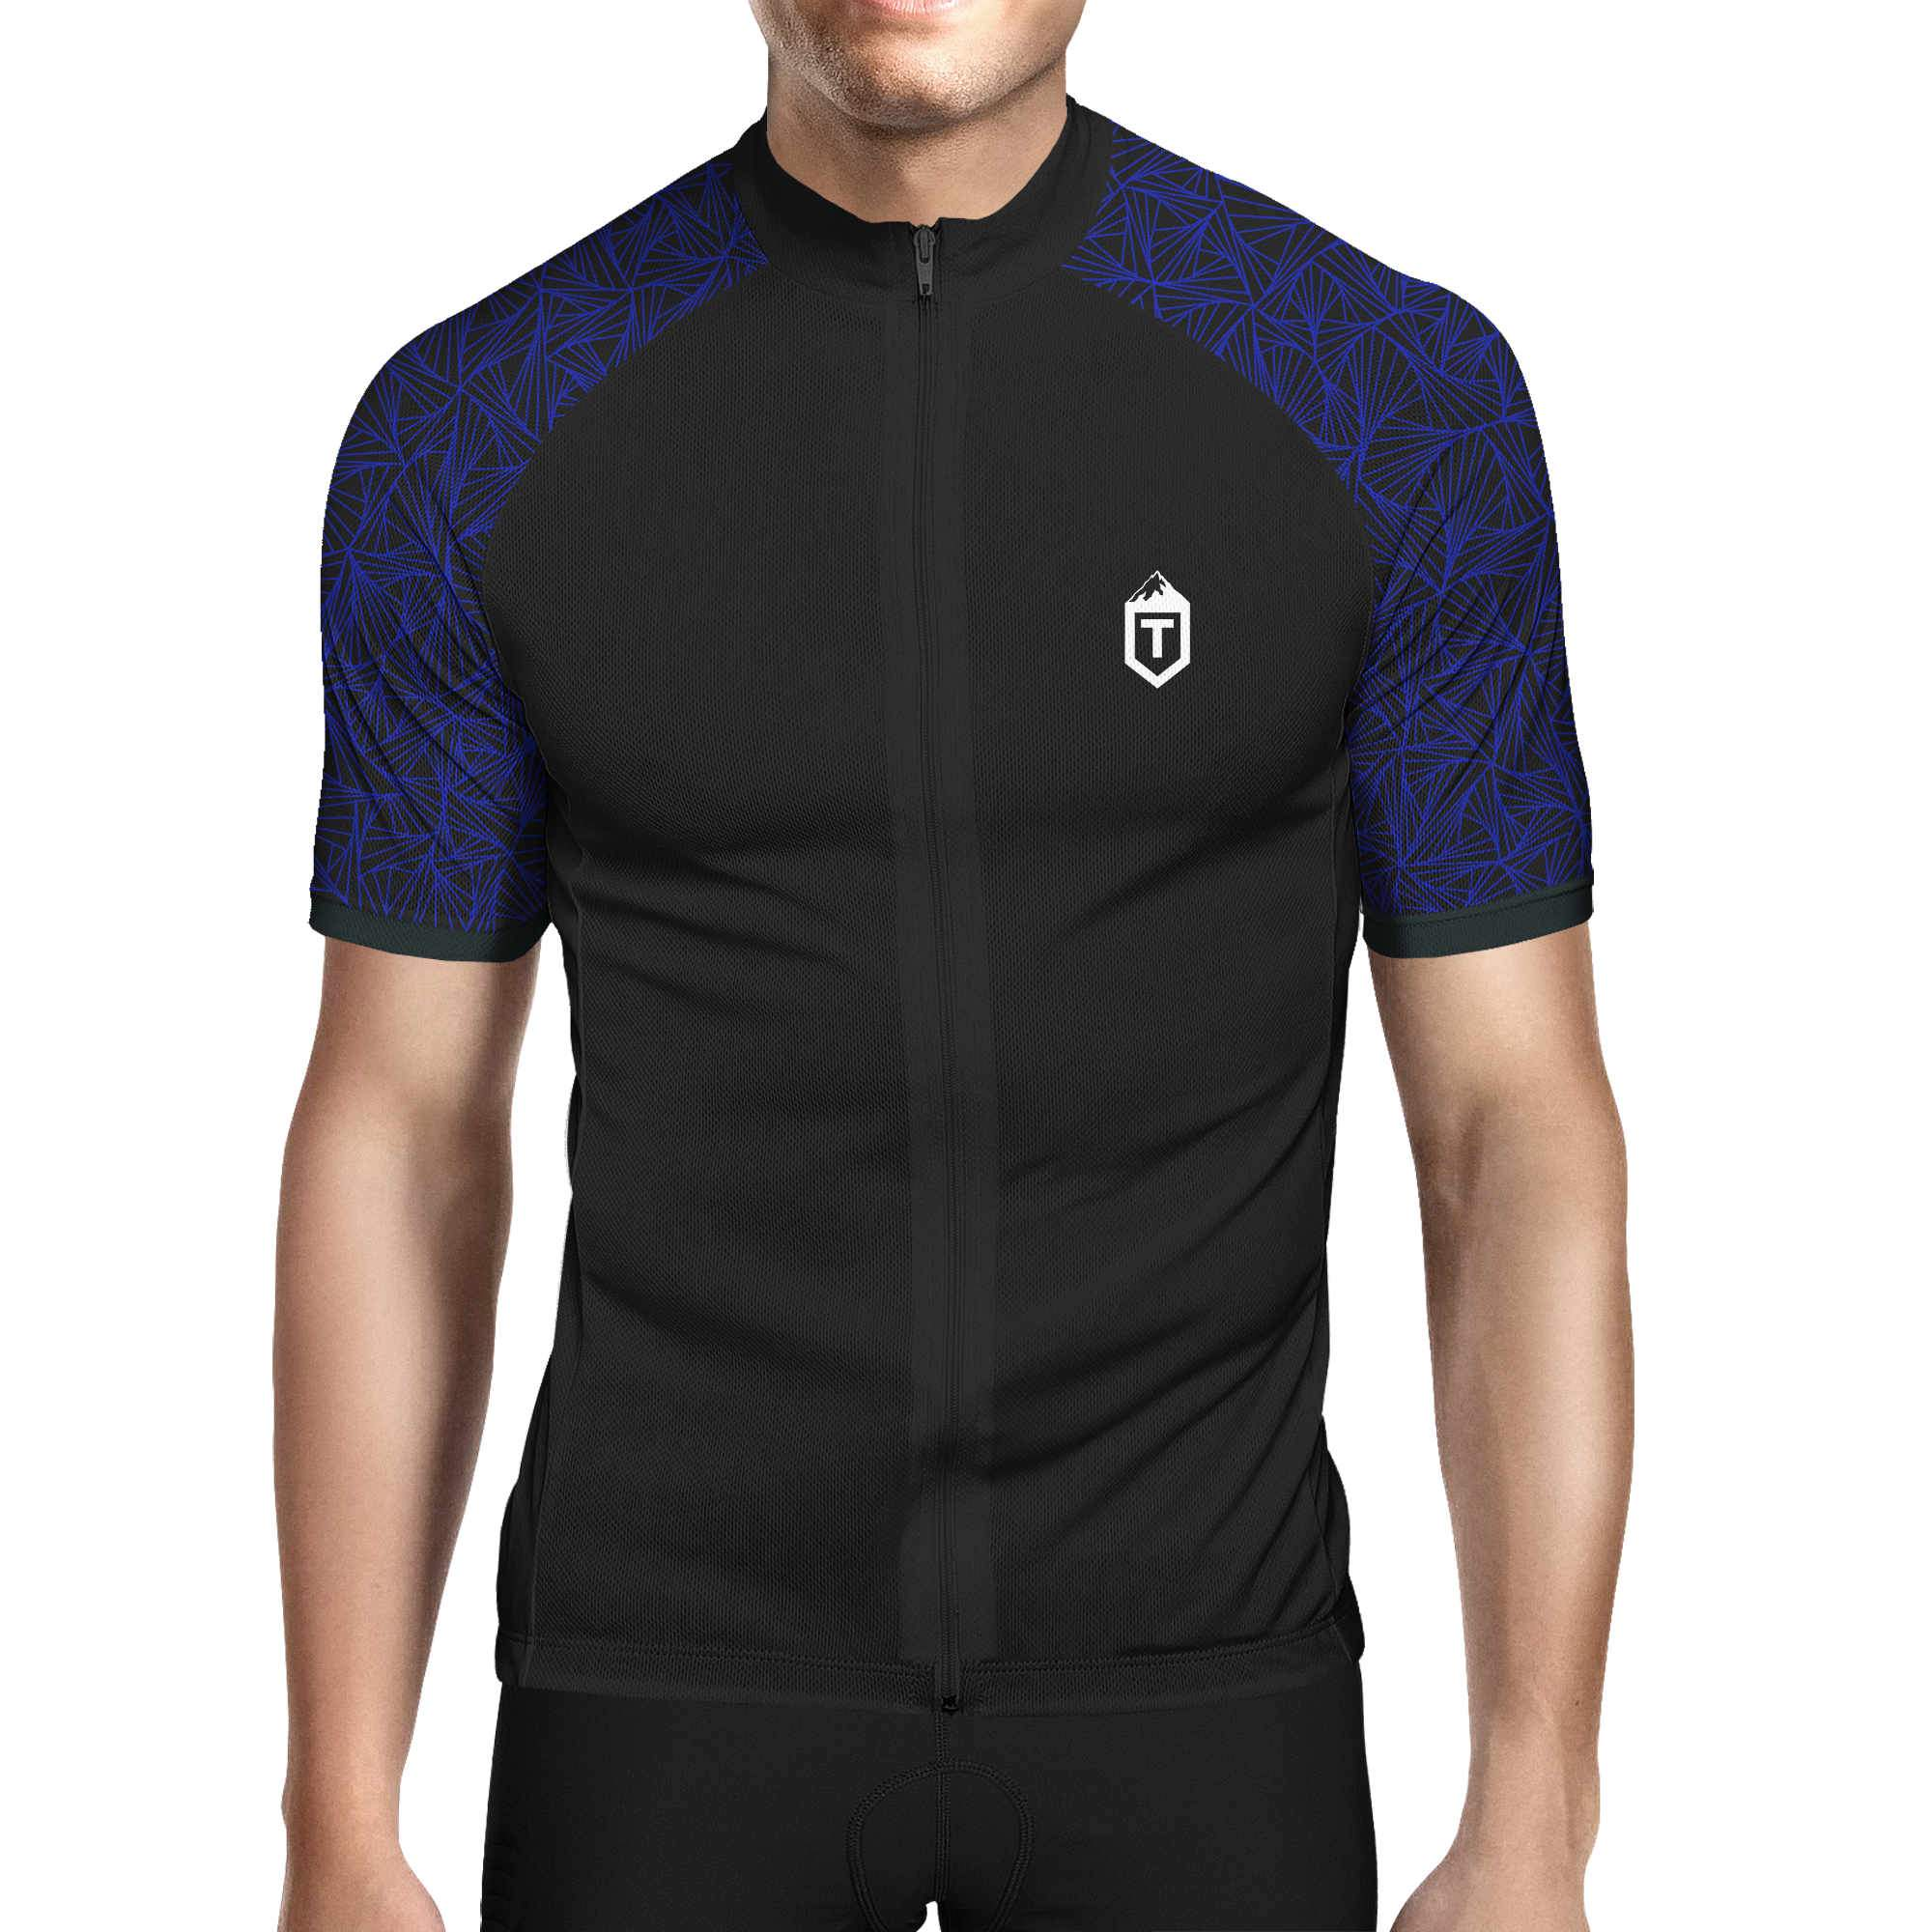 Triangles Jersey - Black / Blue - The Tempests Store